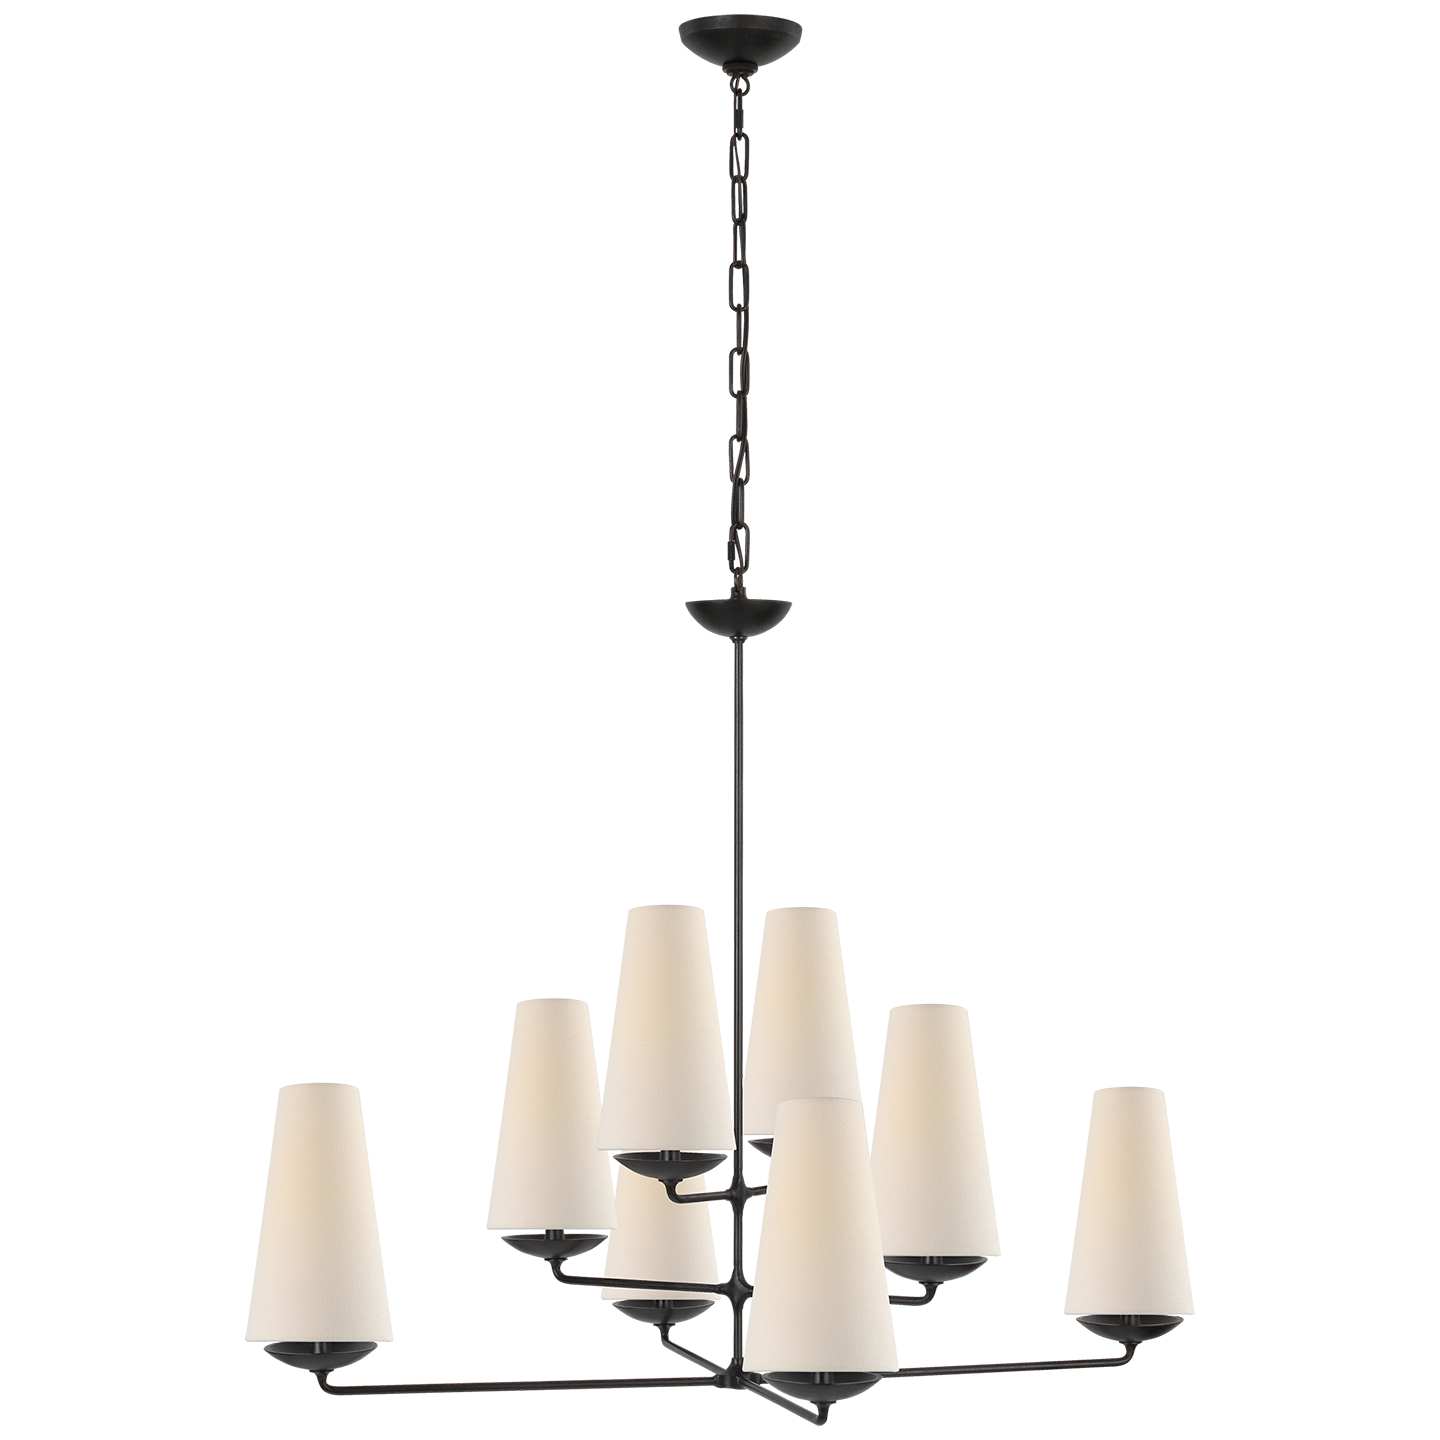 """Fontaine Large Offset Chandelier in Aged Iron with Linen Shades Item # ARN 5205AI-L   Designer: AERIN Fixture Height: 33.5"""" Width: 35.5"""" Canopy: 5"""" Round Socket: 8 - E12 Candelabra Wattage: 8 - 40 B"""